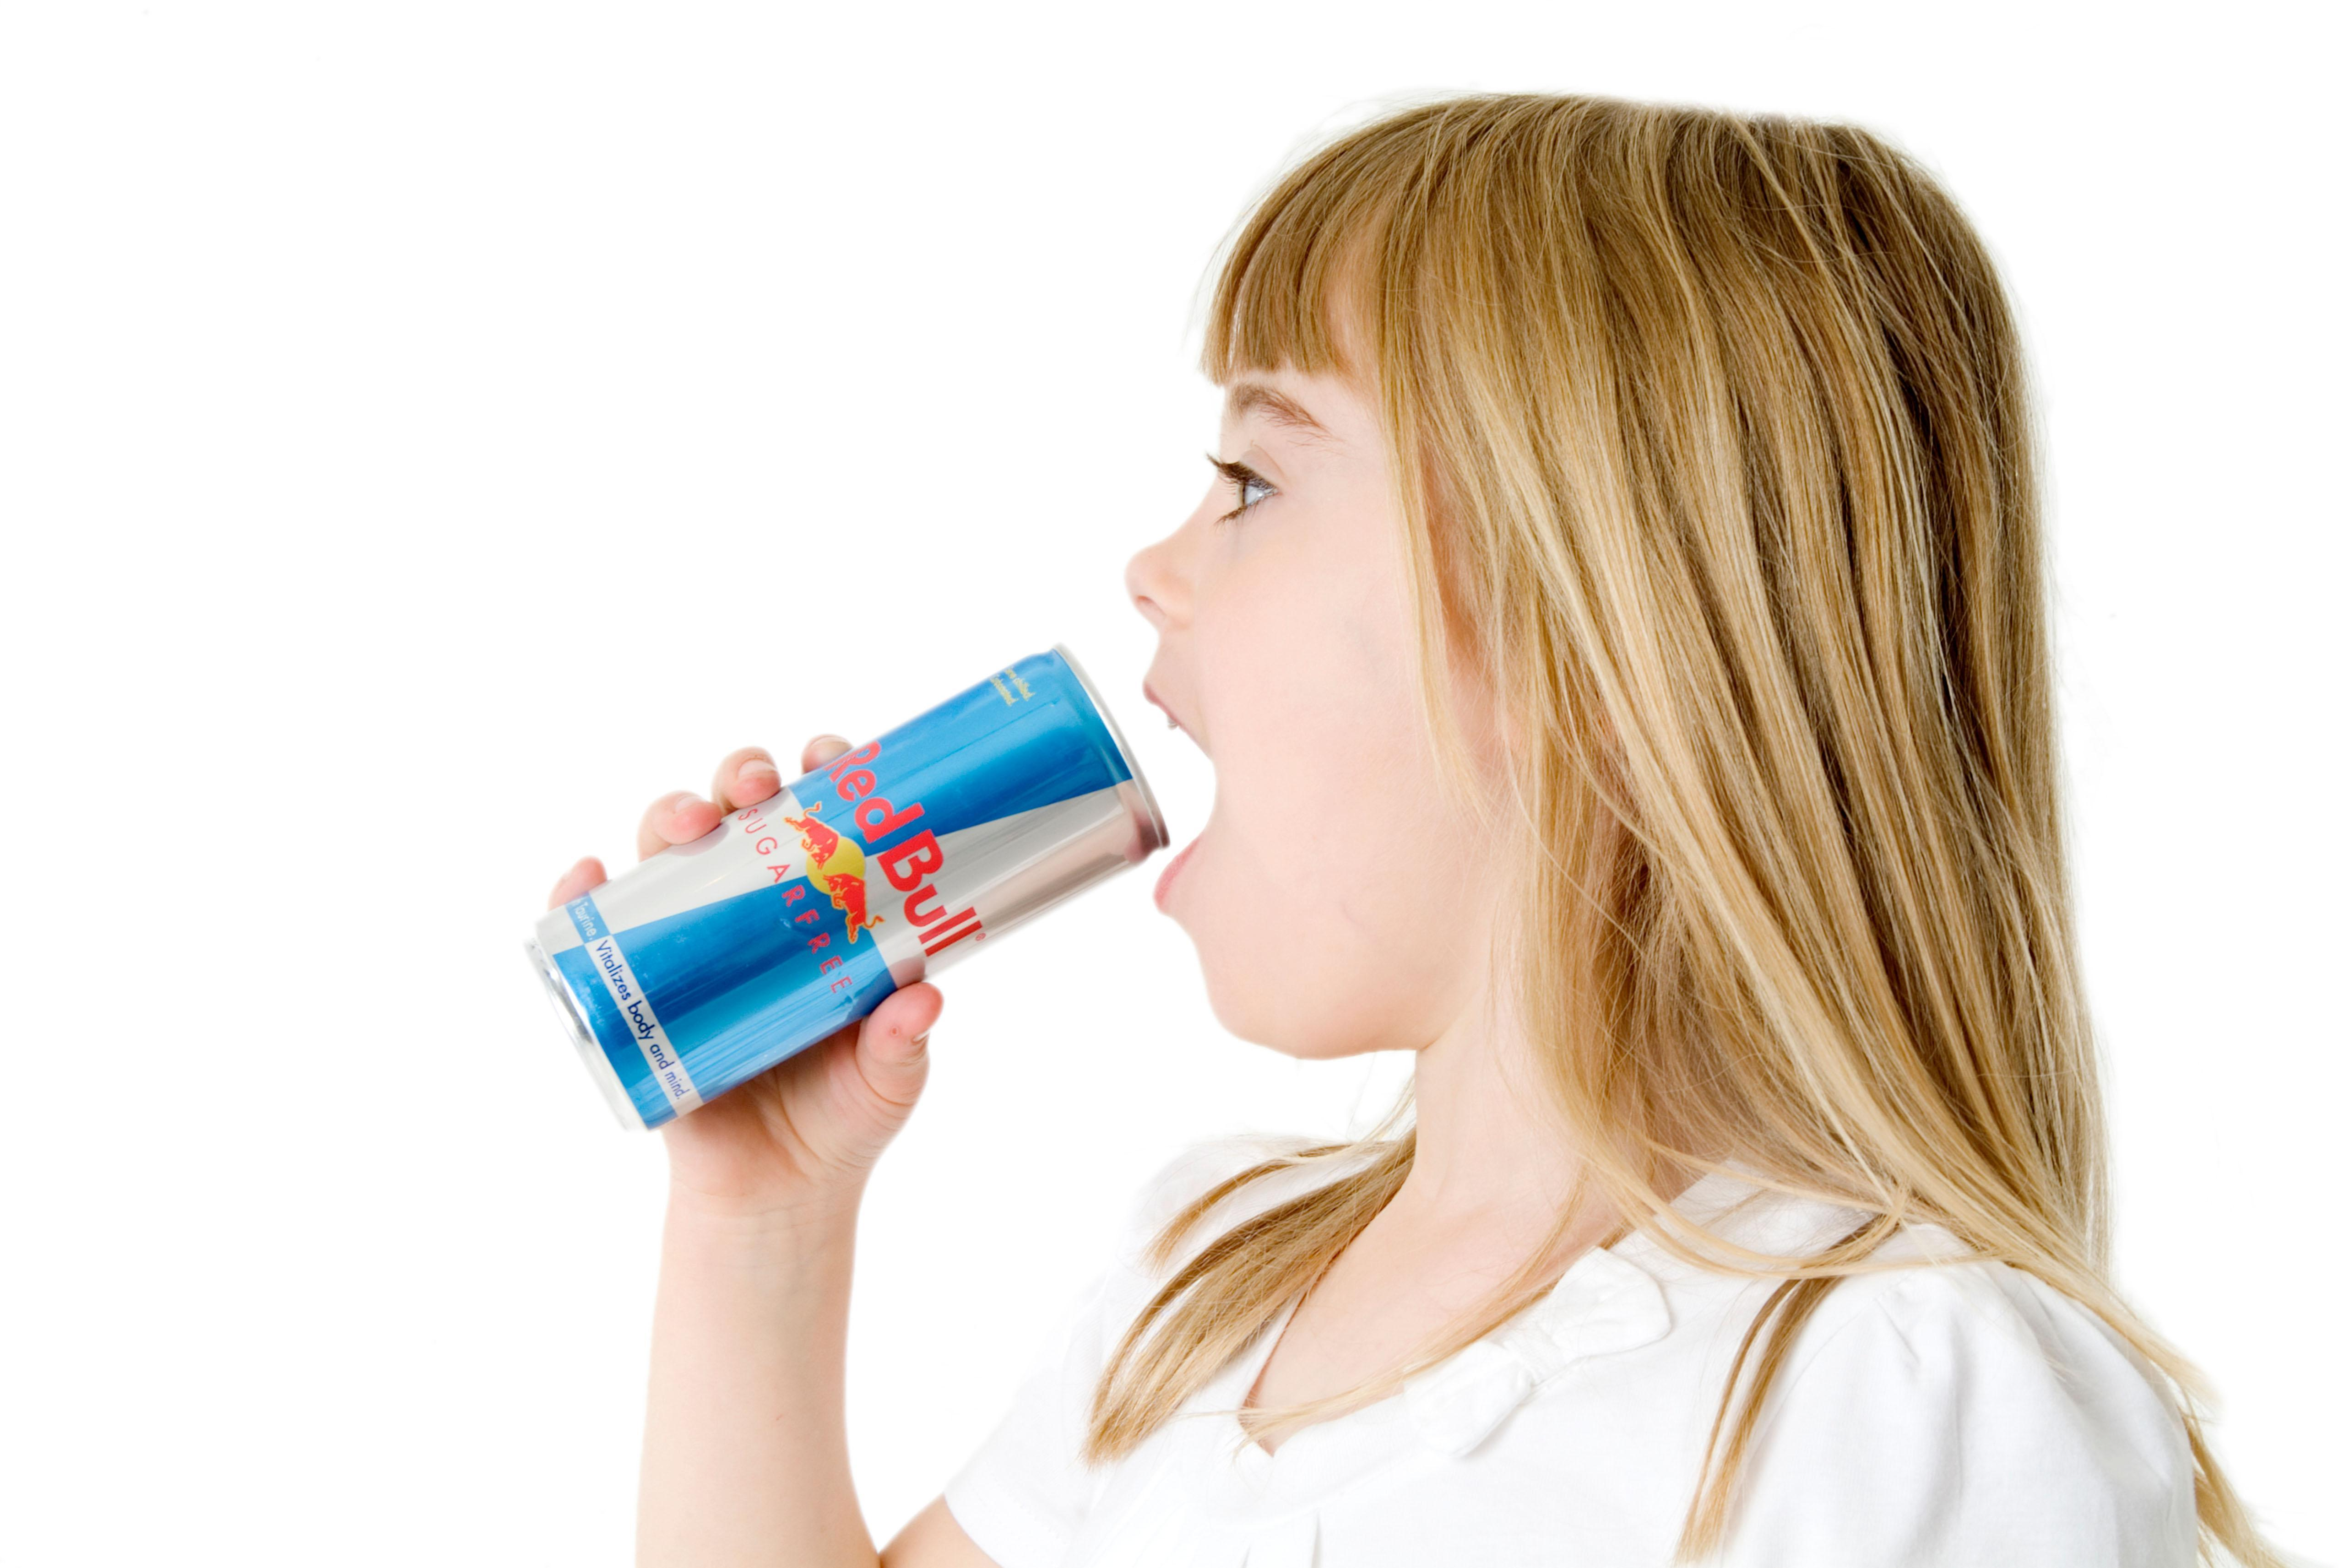 Energy drinks 'trigger nasty side effects like heart problems and seizures in HALF of kids'